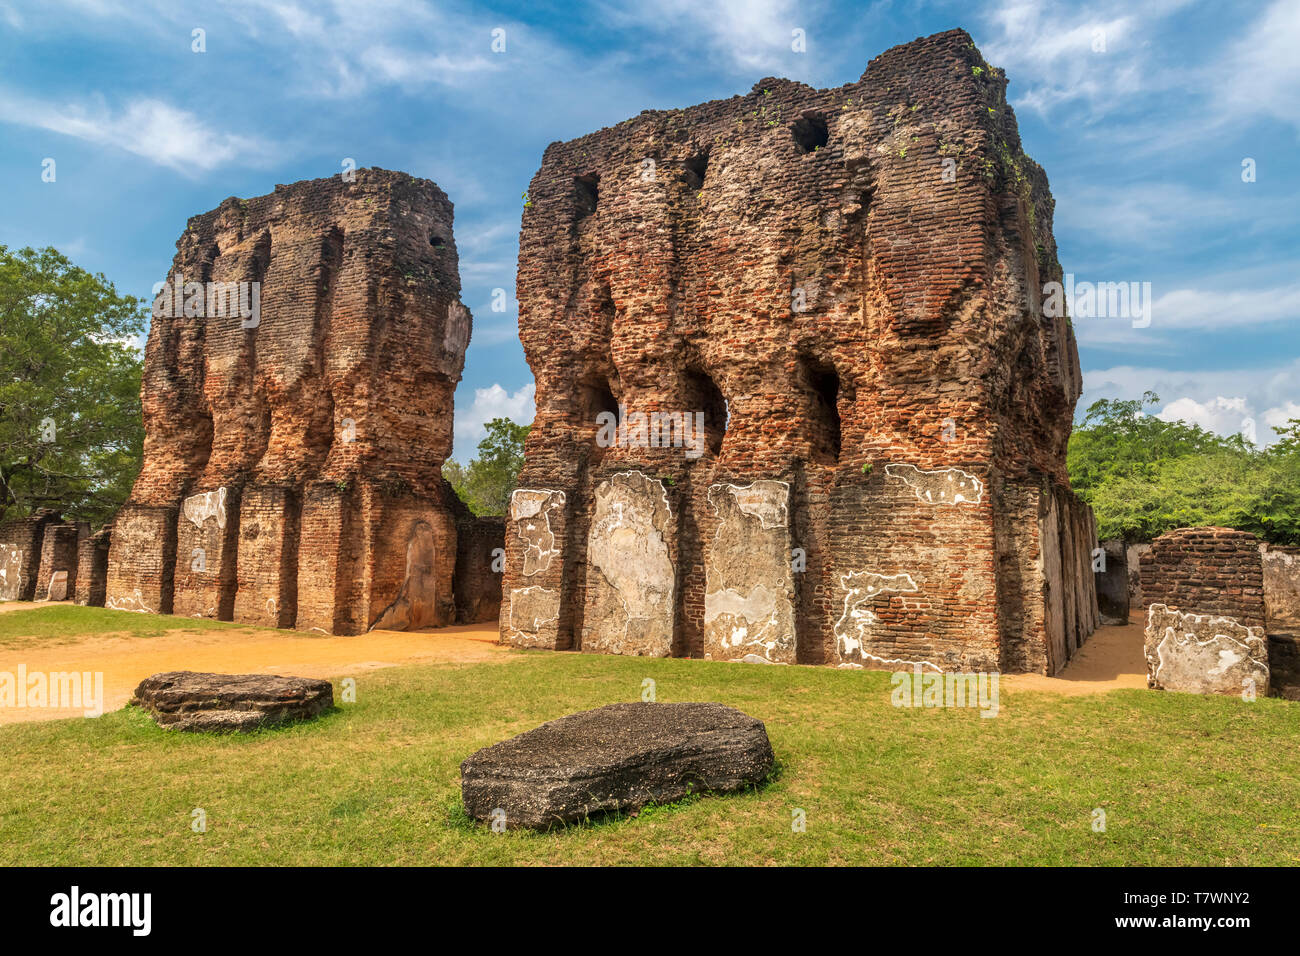 The impressive remains of the Royal Palace at Polonnaruwa in the North Central Province of Sri Lanka. Stock Photo